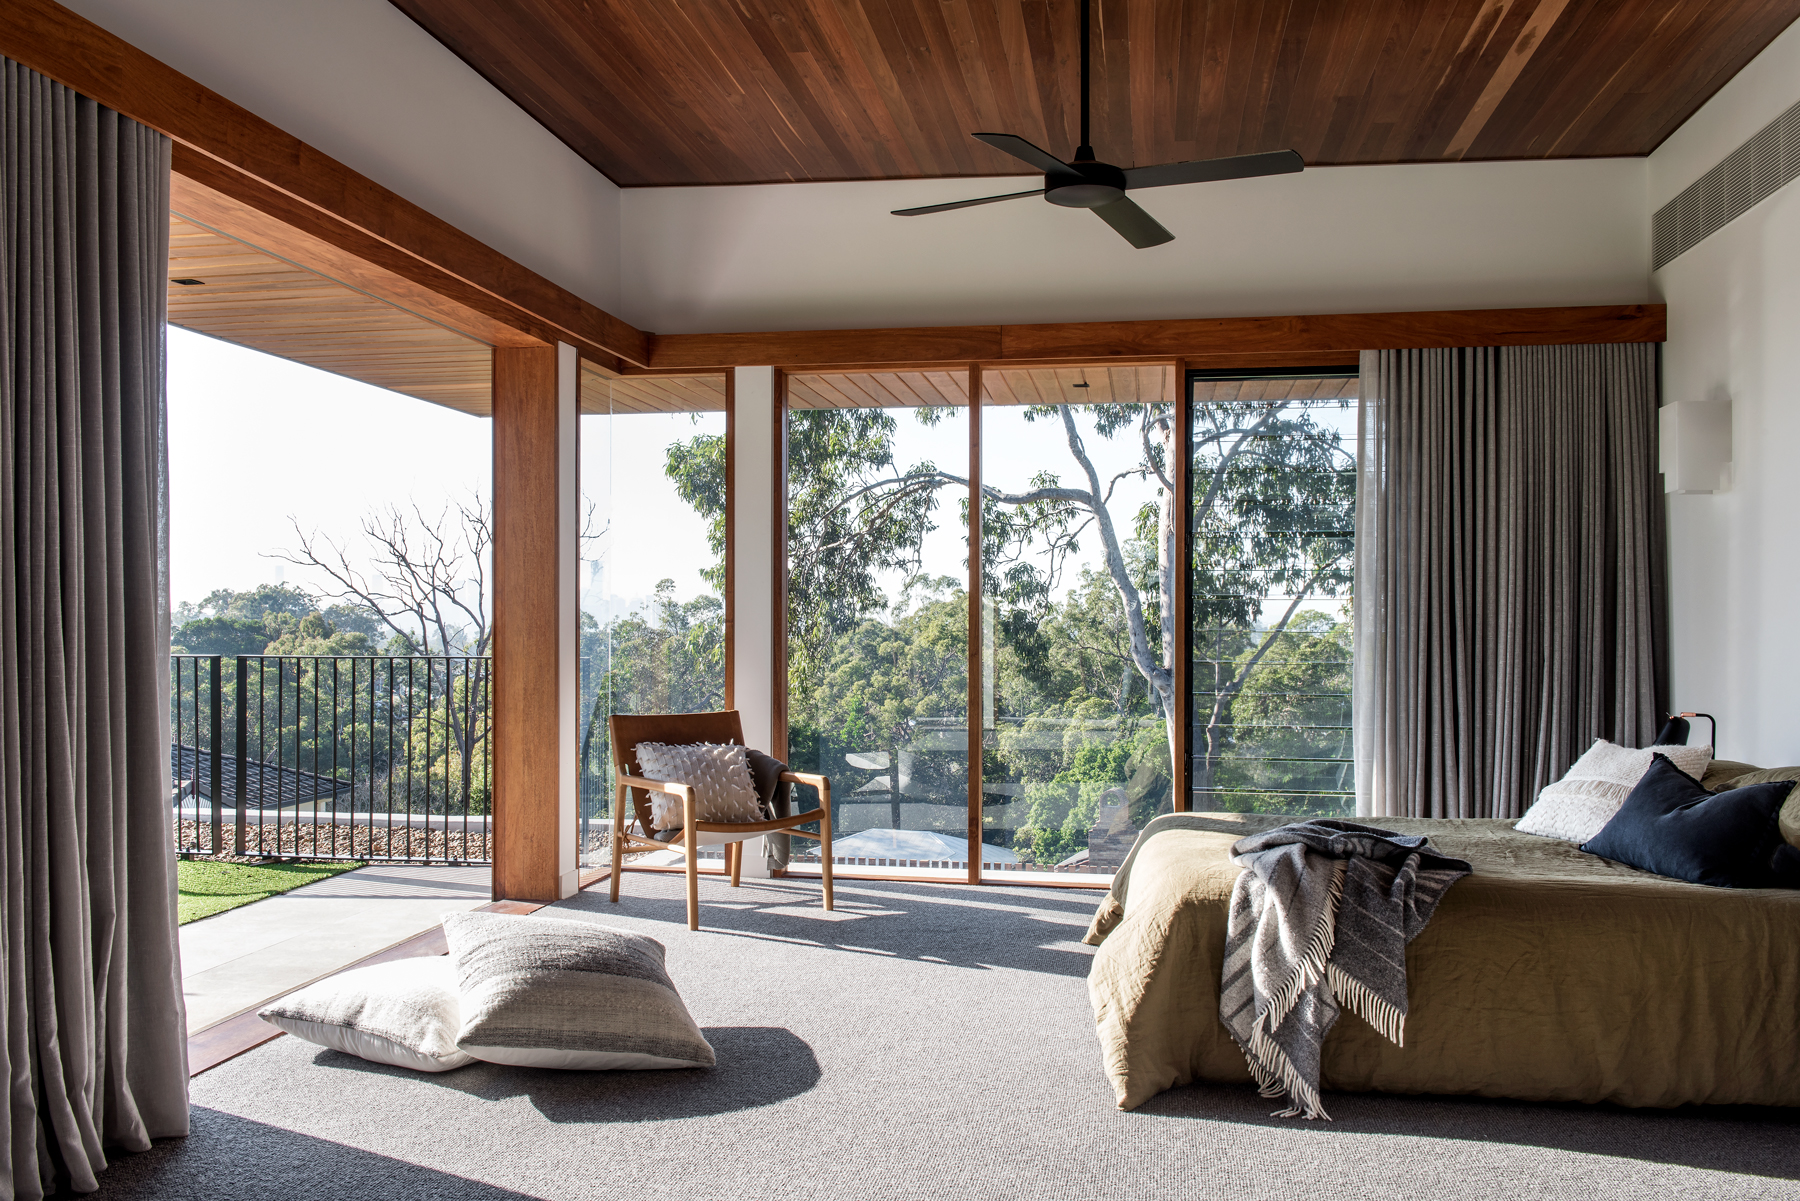 The Nest master bedroom suite featuring timber ceiling and glass windows, designed by Shaun Lockyer, built by Kalka, photographed by Cathy Schusler.